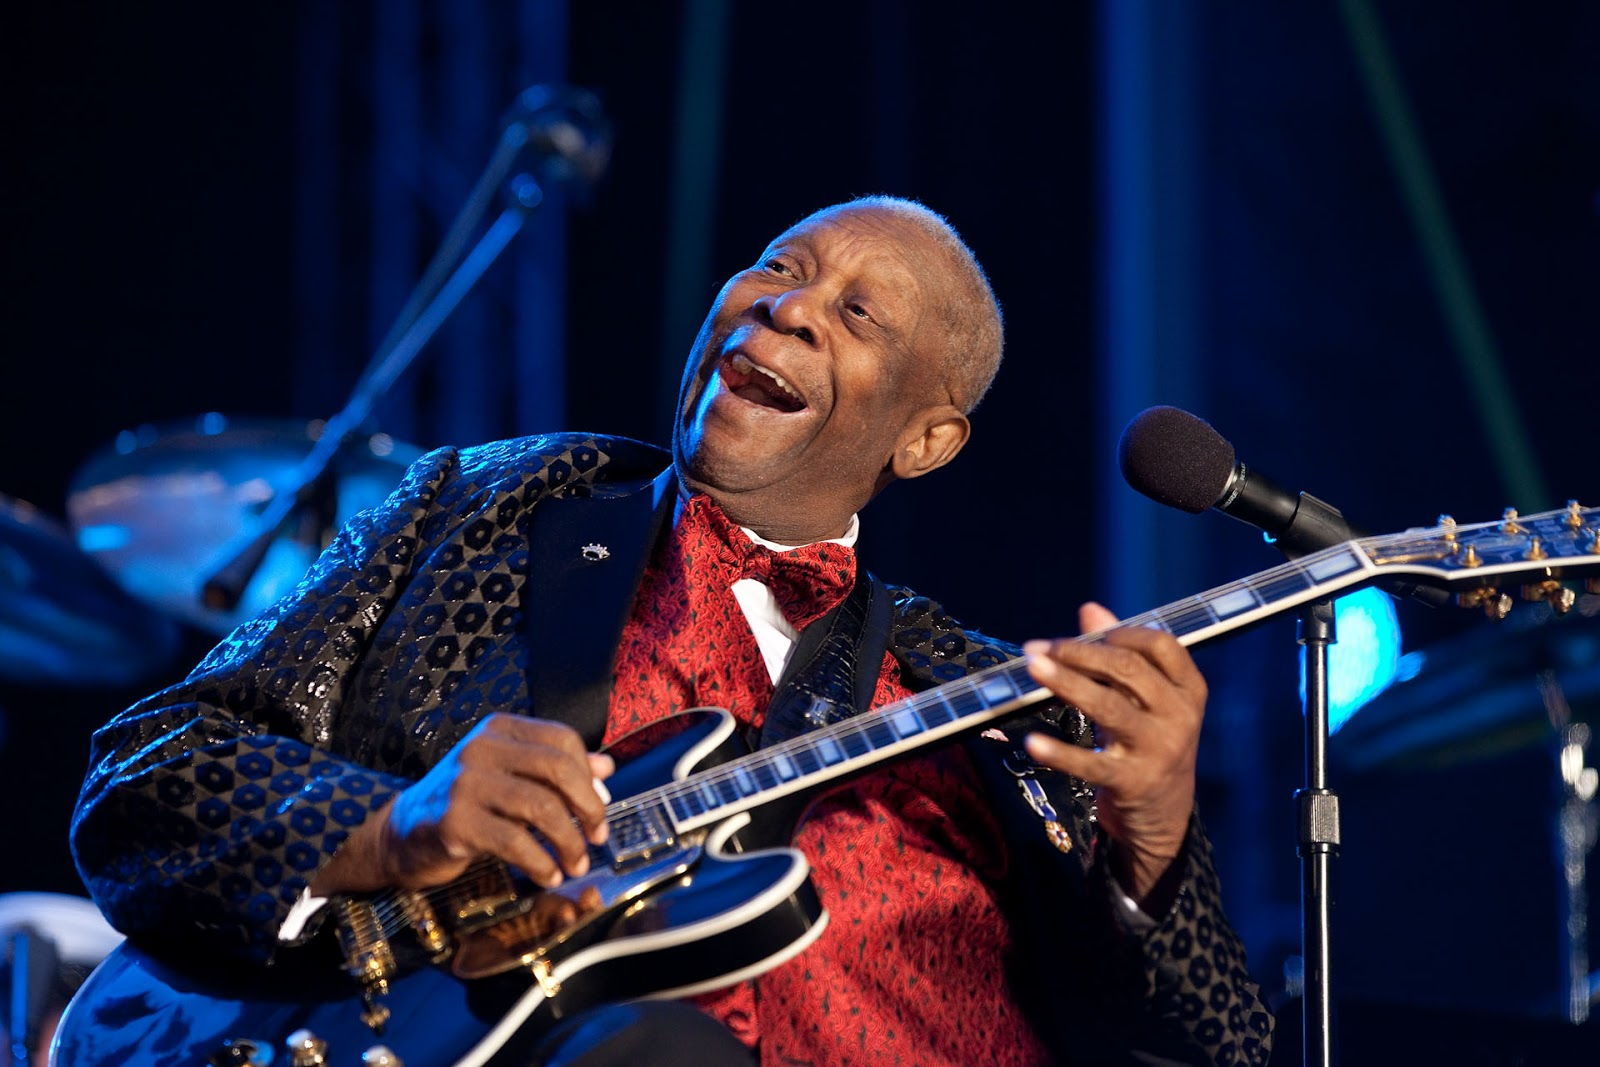 Although he had many guitars over his long career, bb king named every one lucille